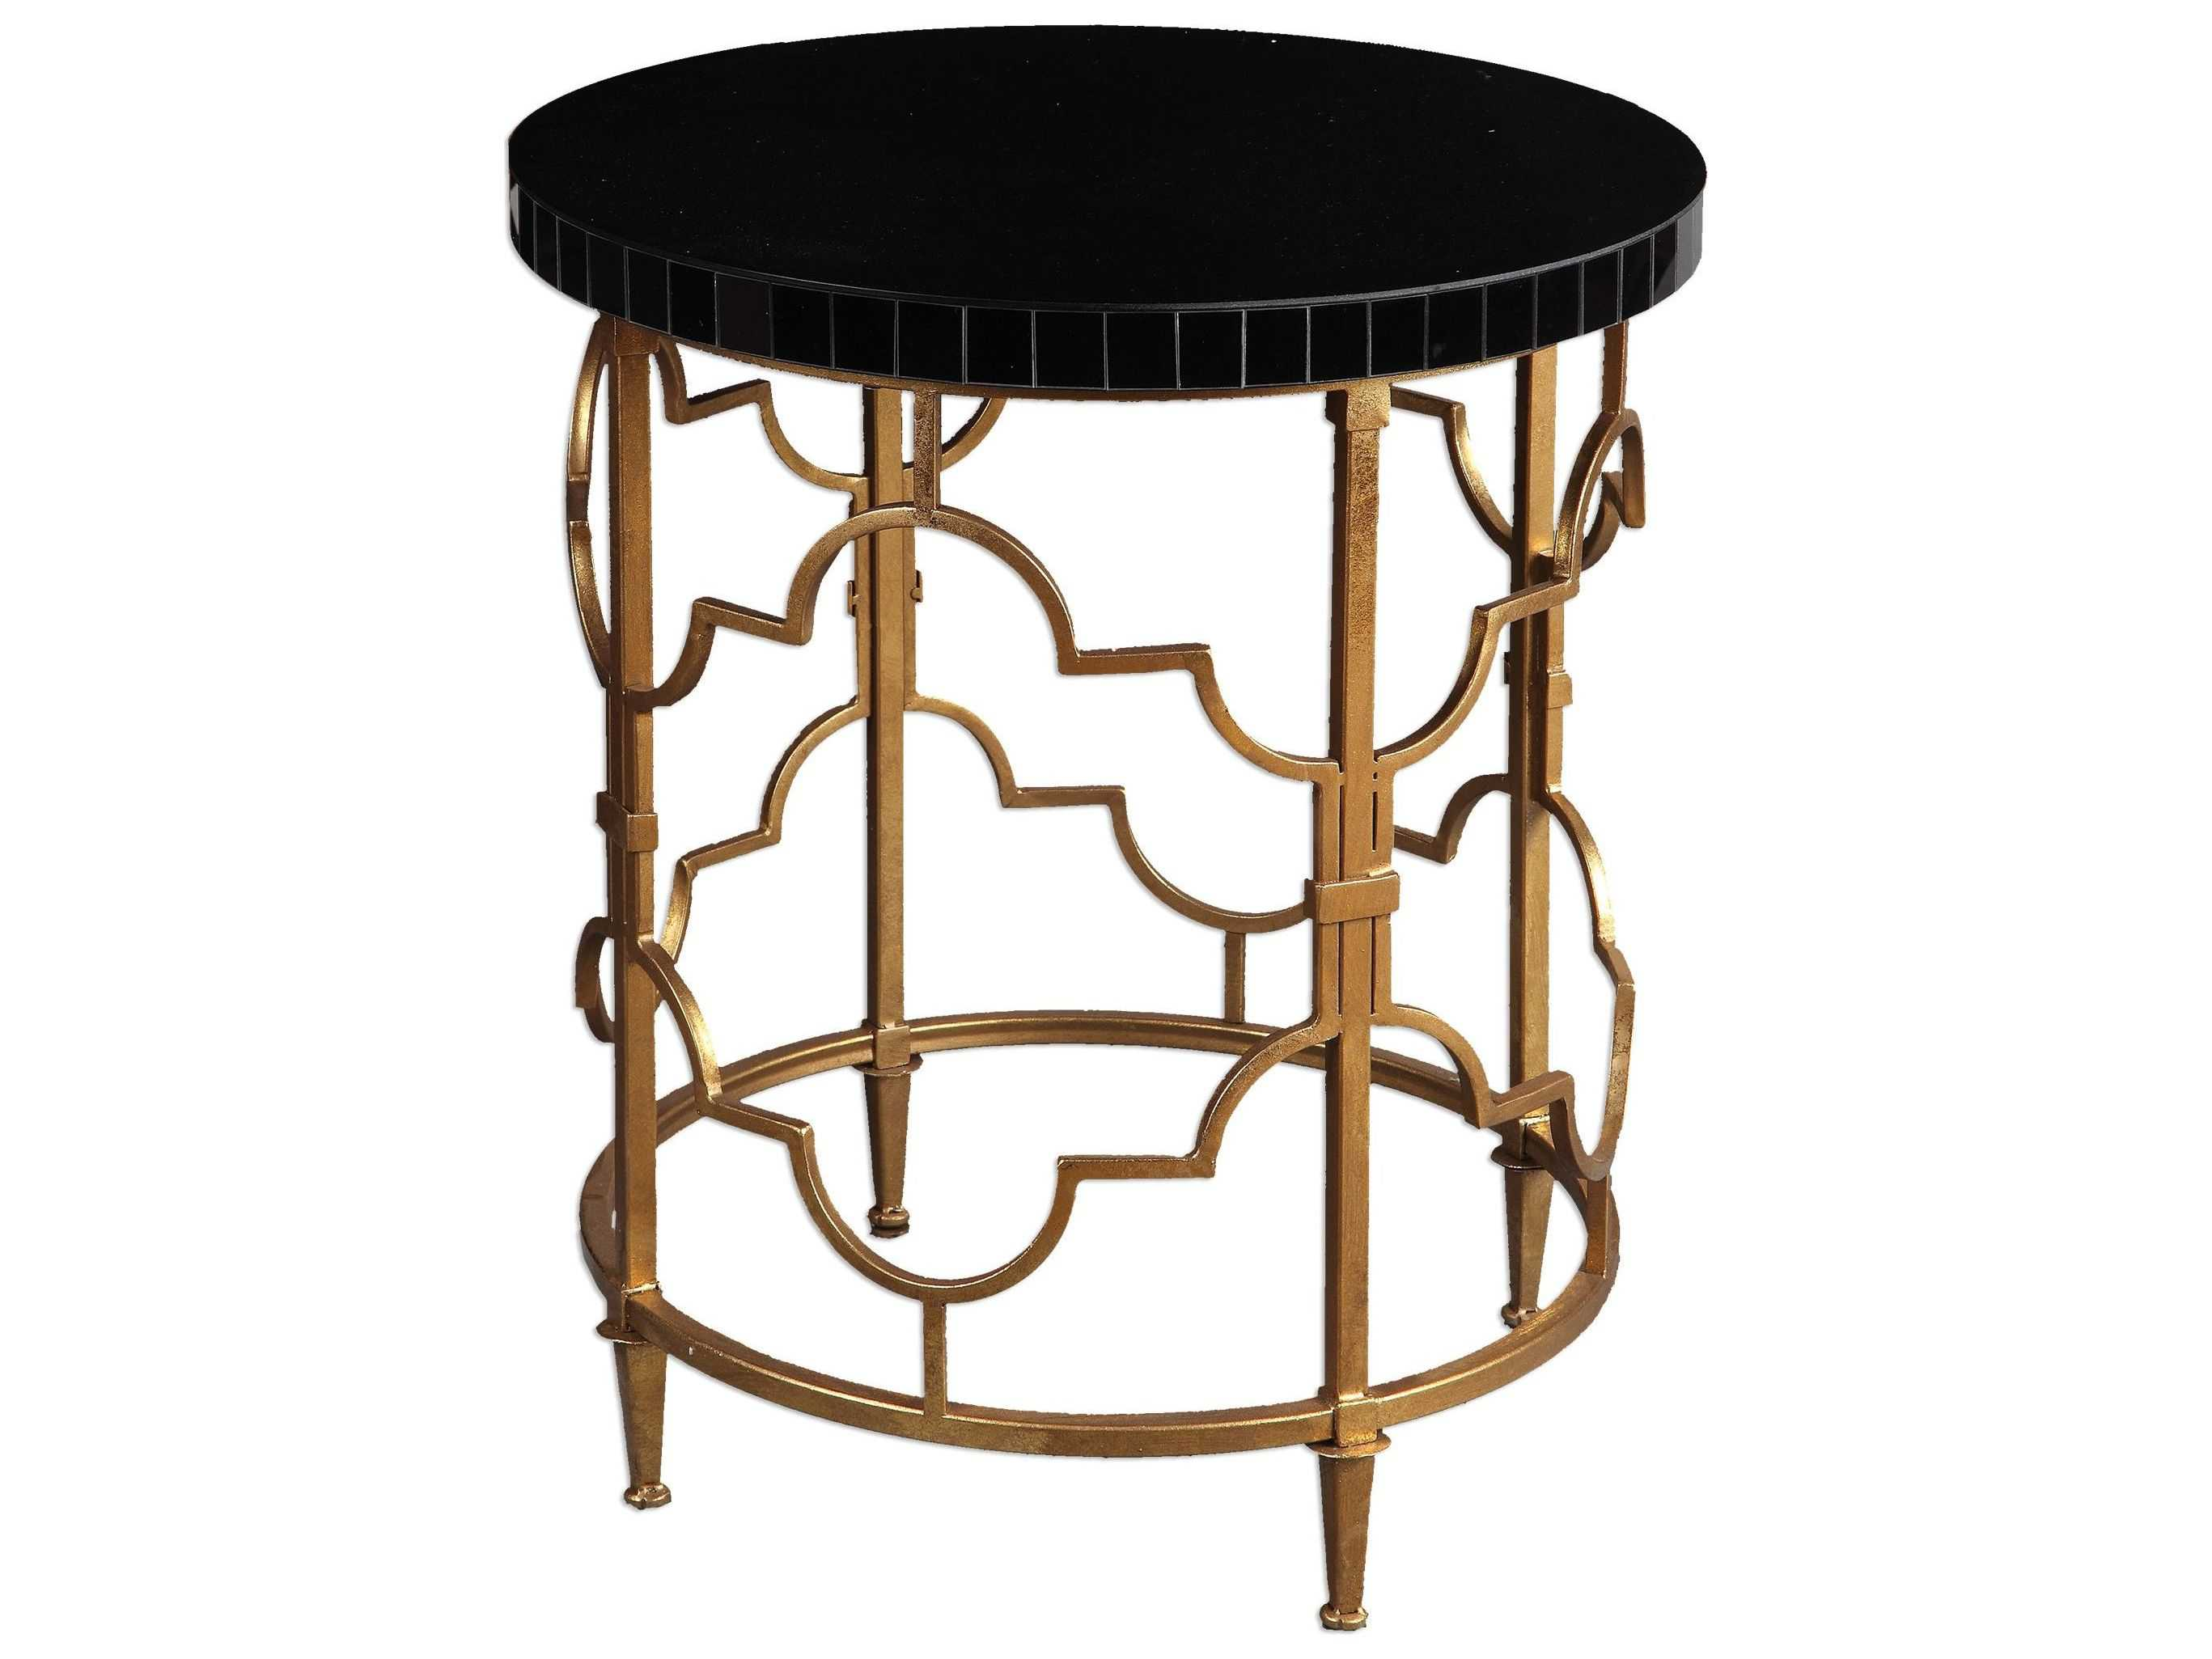 uttermost mosi gold black round accent table acrylic tables granite console laton mirrored and end very slim entry kitchen vanity target dining antique furniture small rose